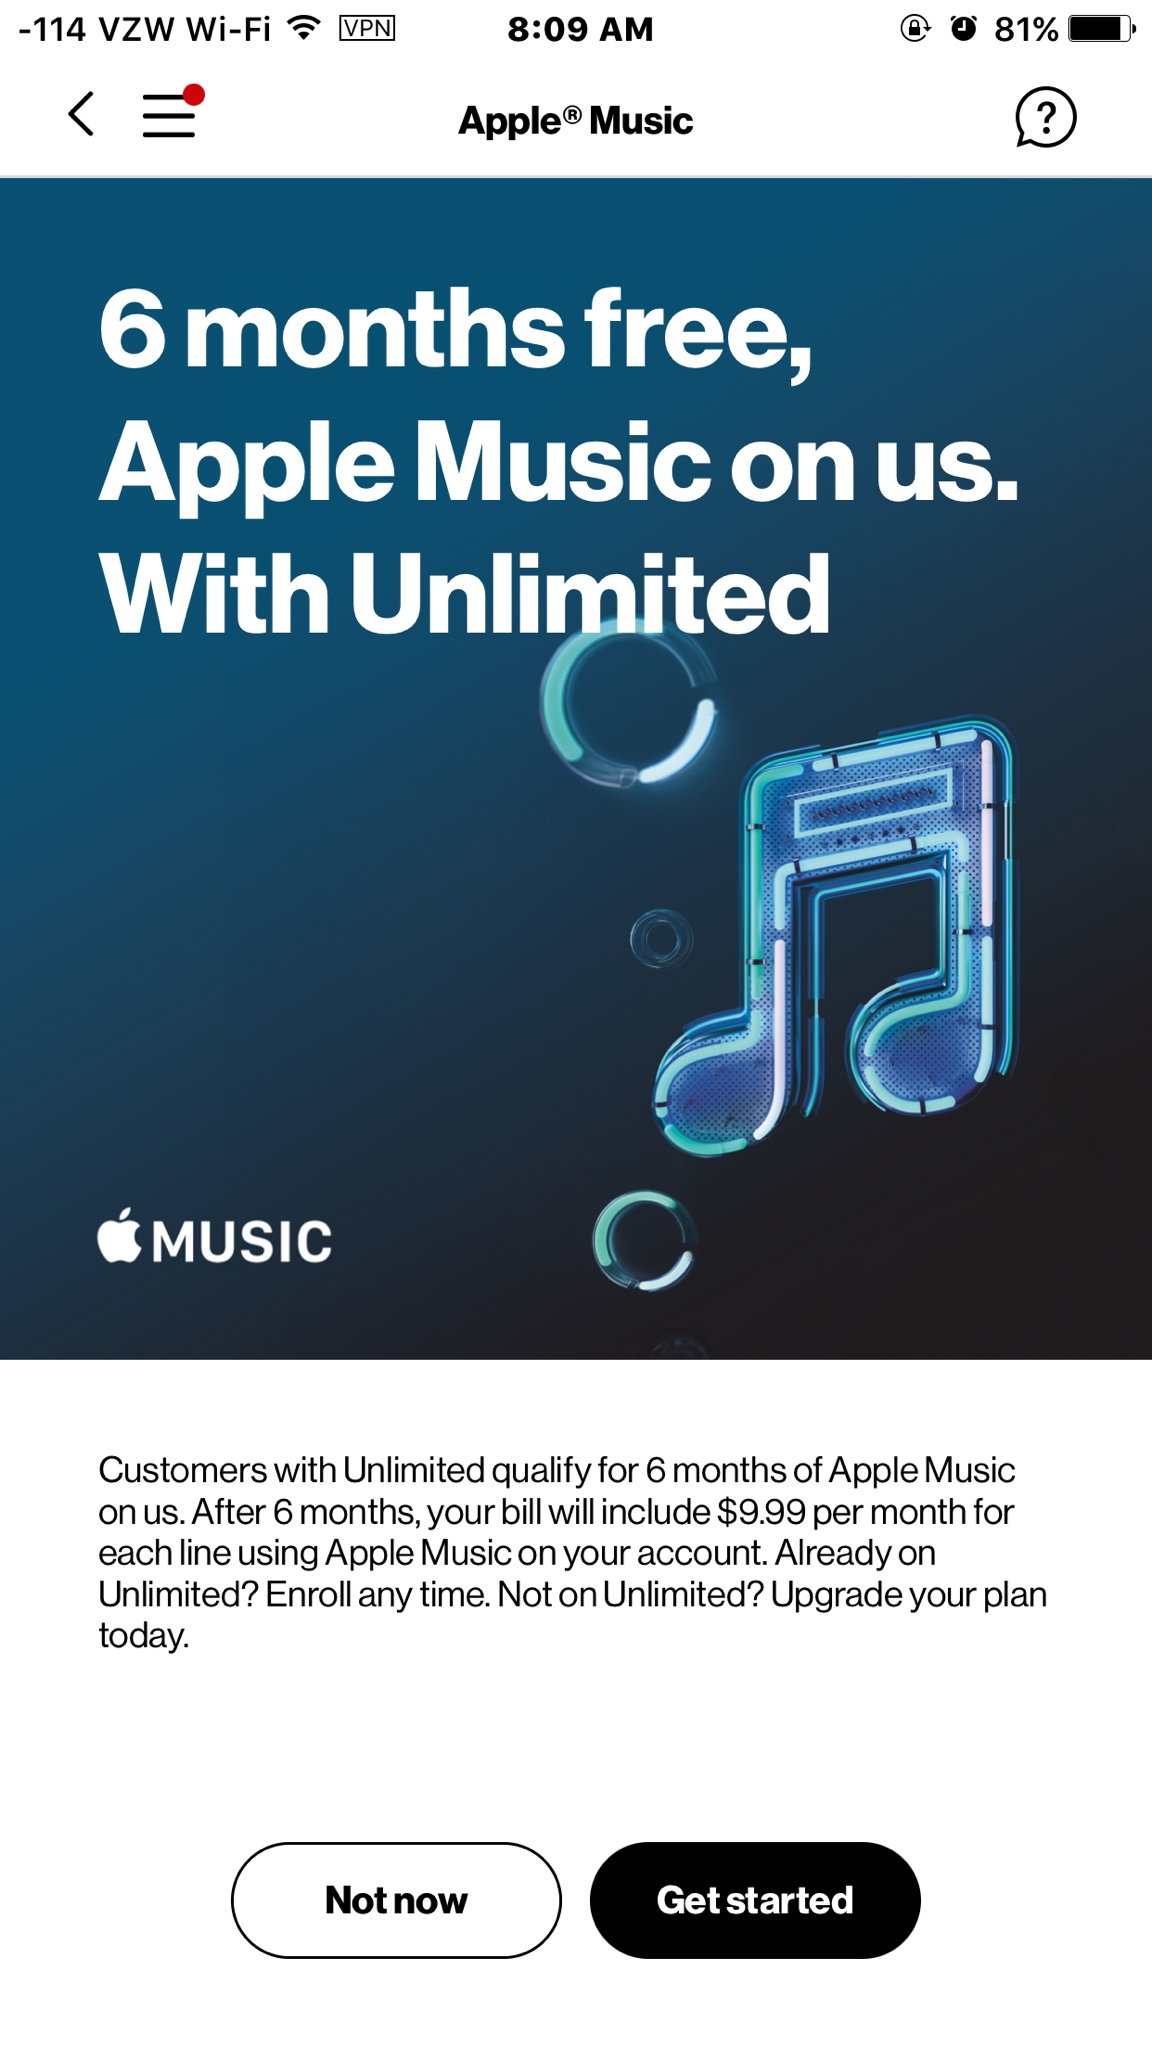 Free 6 months of Music for unlimited customers  - iPhone